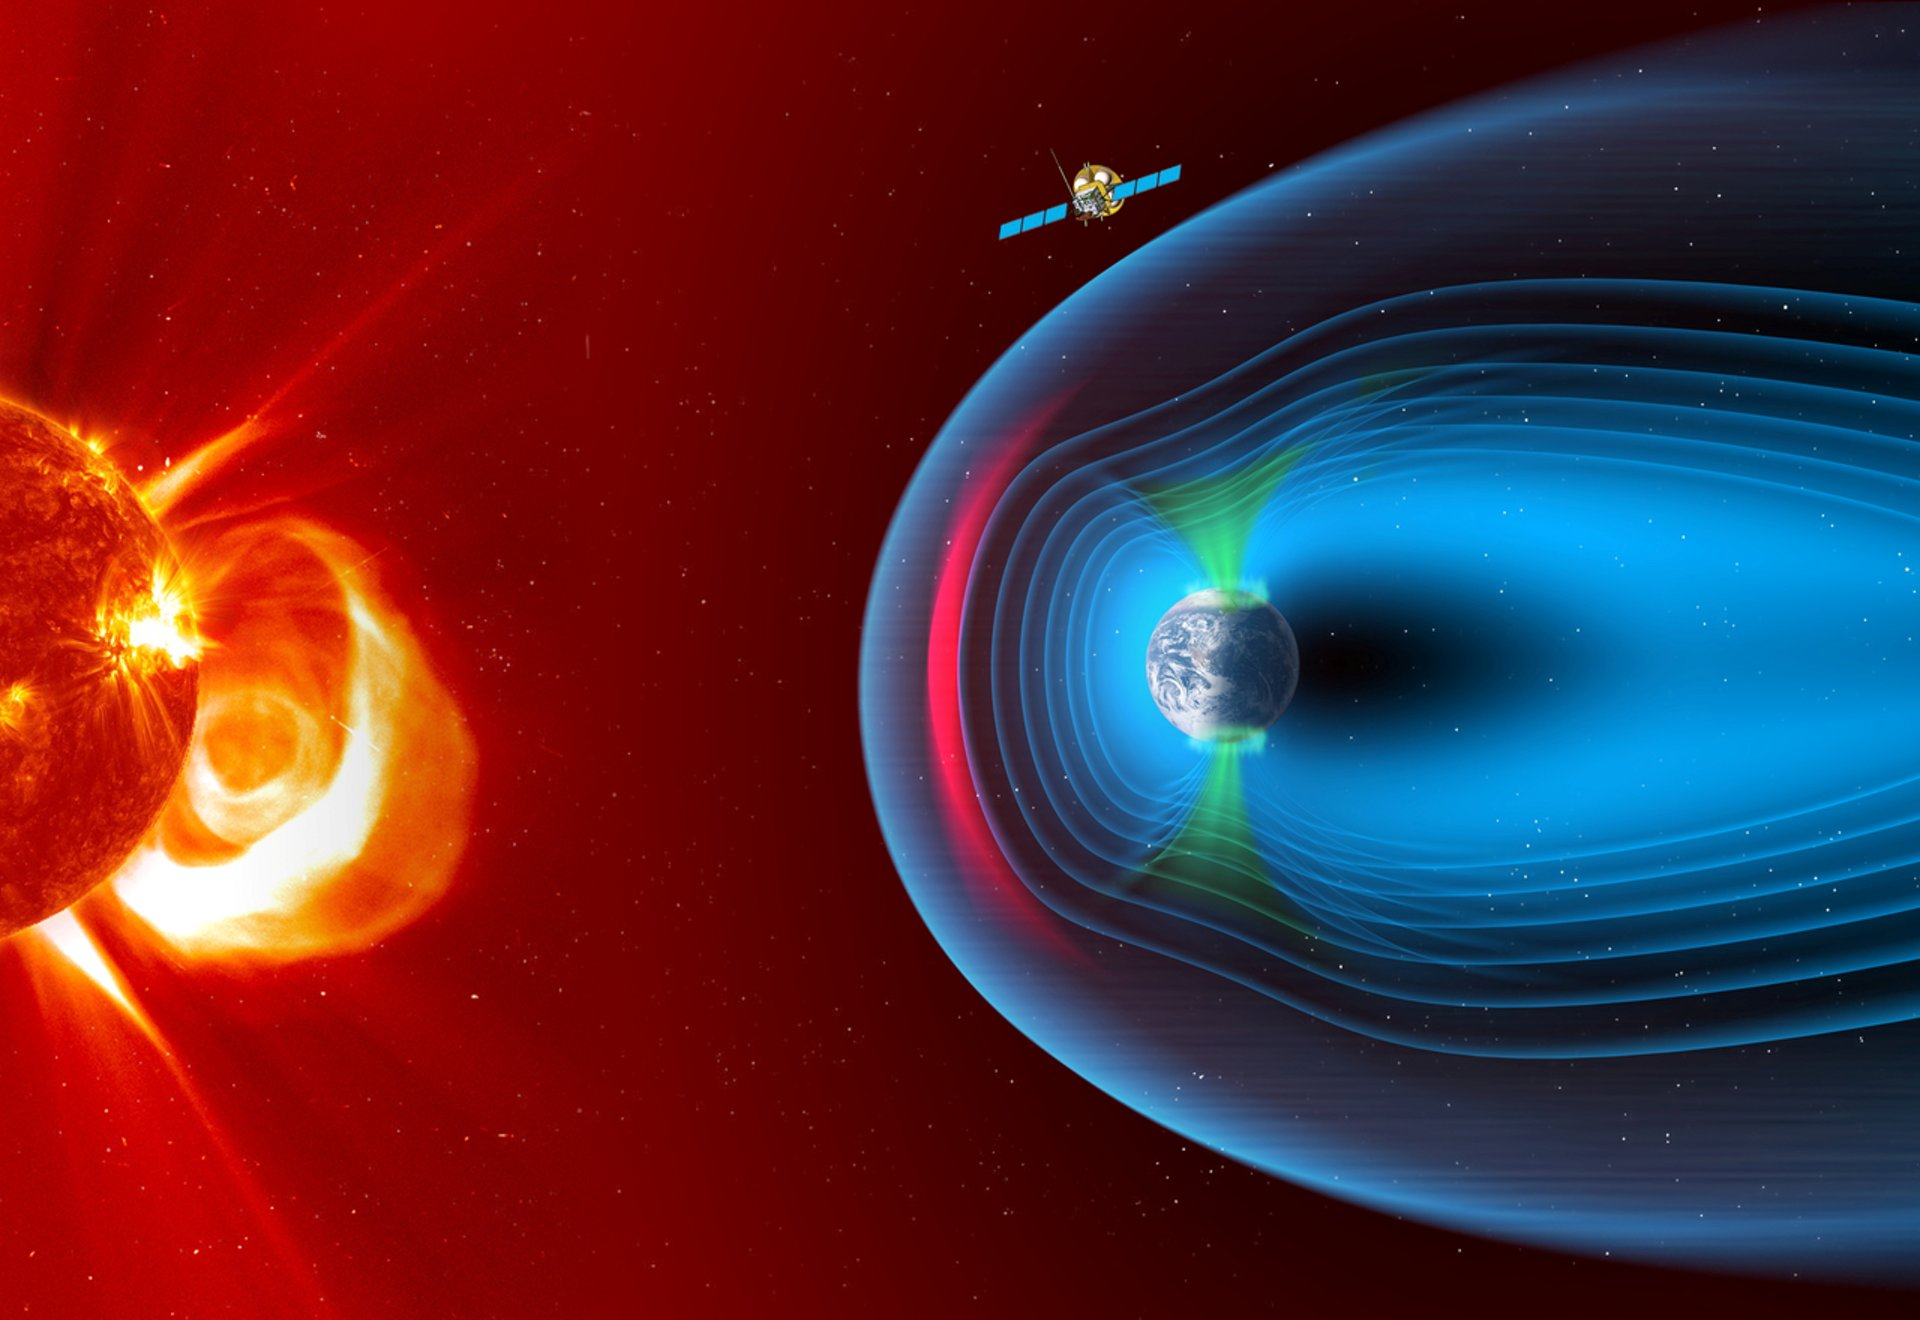 SMILE will study and understand space weather. especially the physics behind continuous interaction between particles in the solar wind and Earth's magnetosphere.